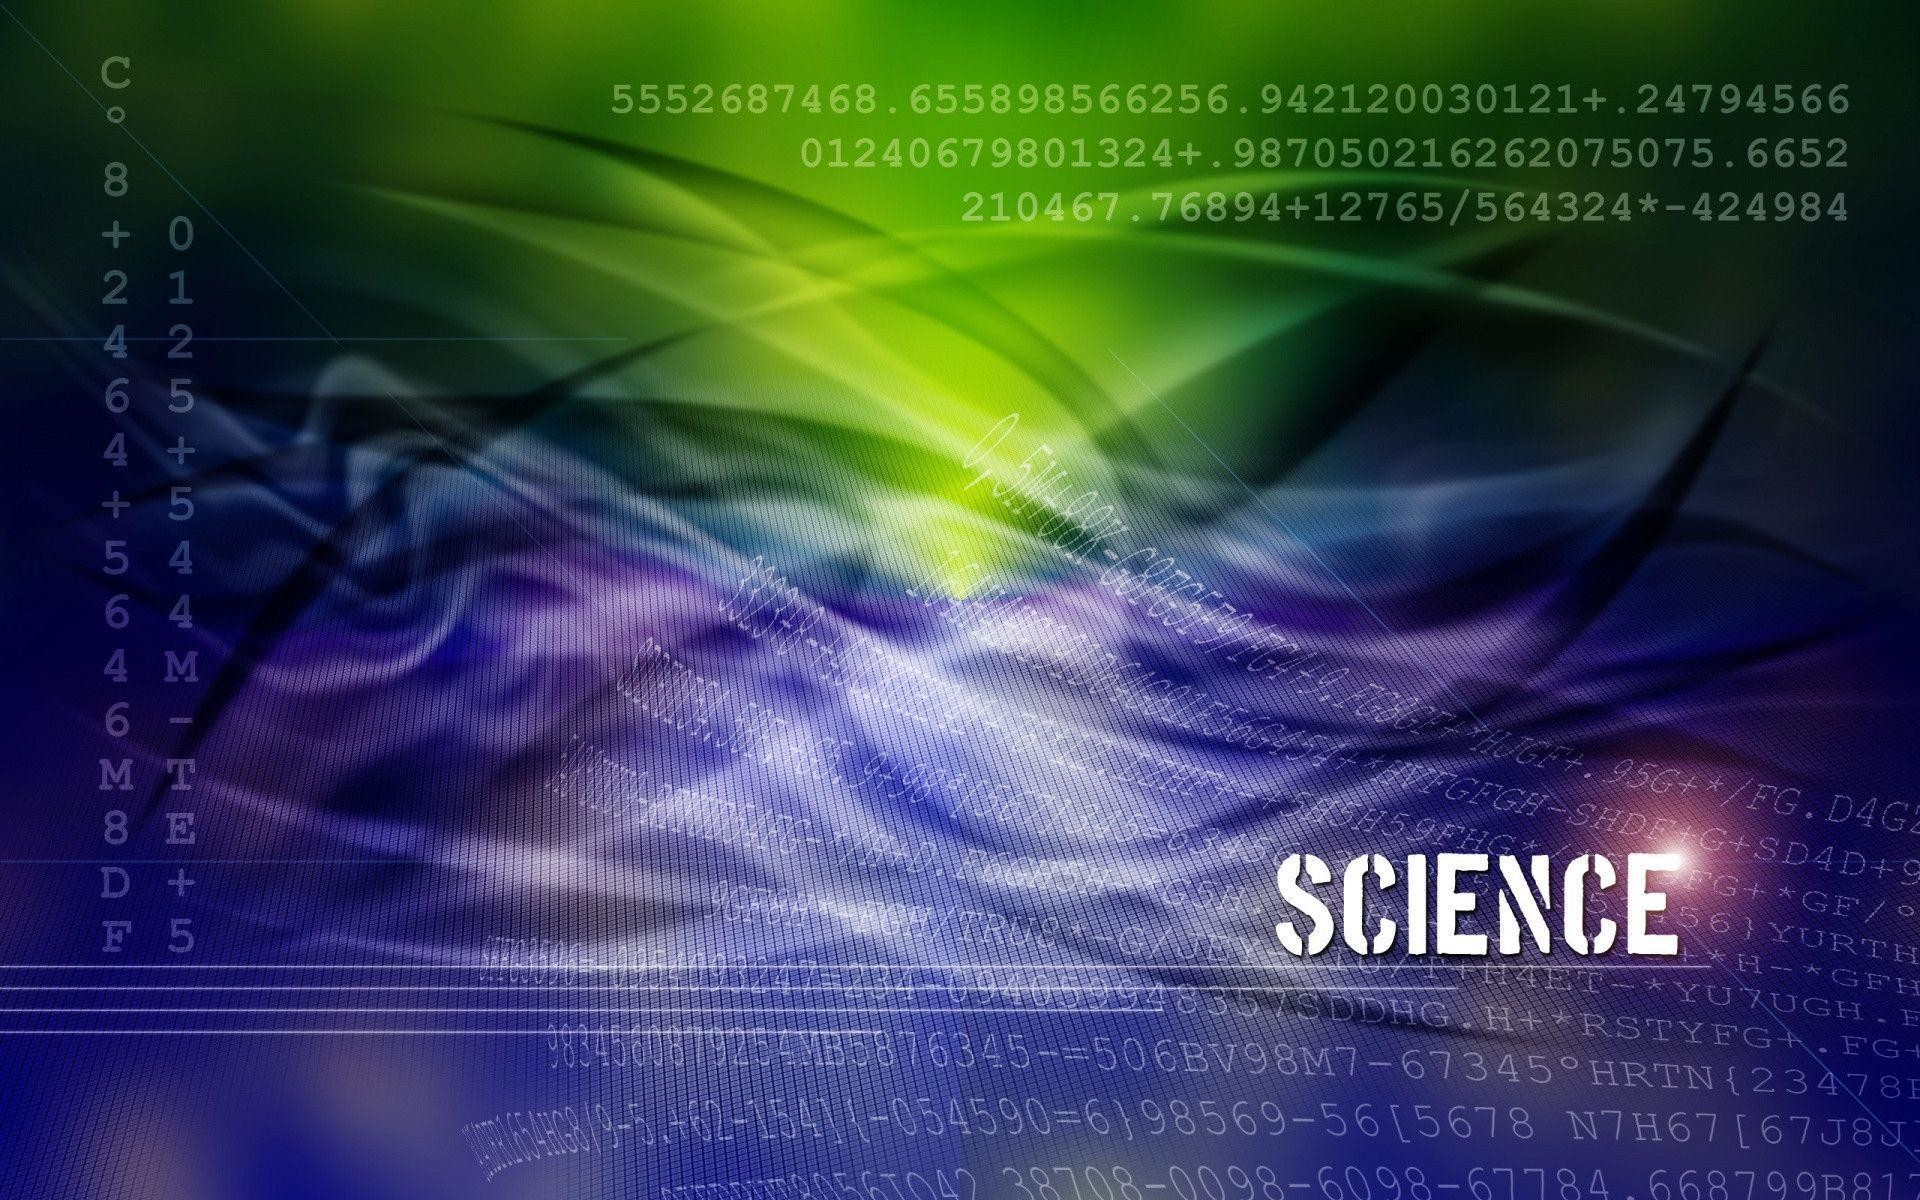 1920x1200 Science Wallpapers - Full HD wallpaper search - page 9